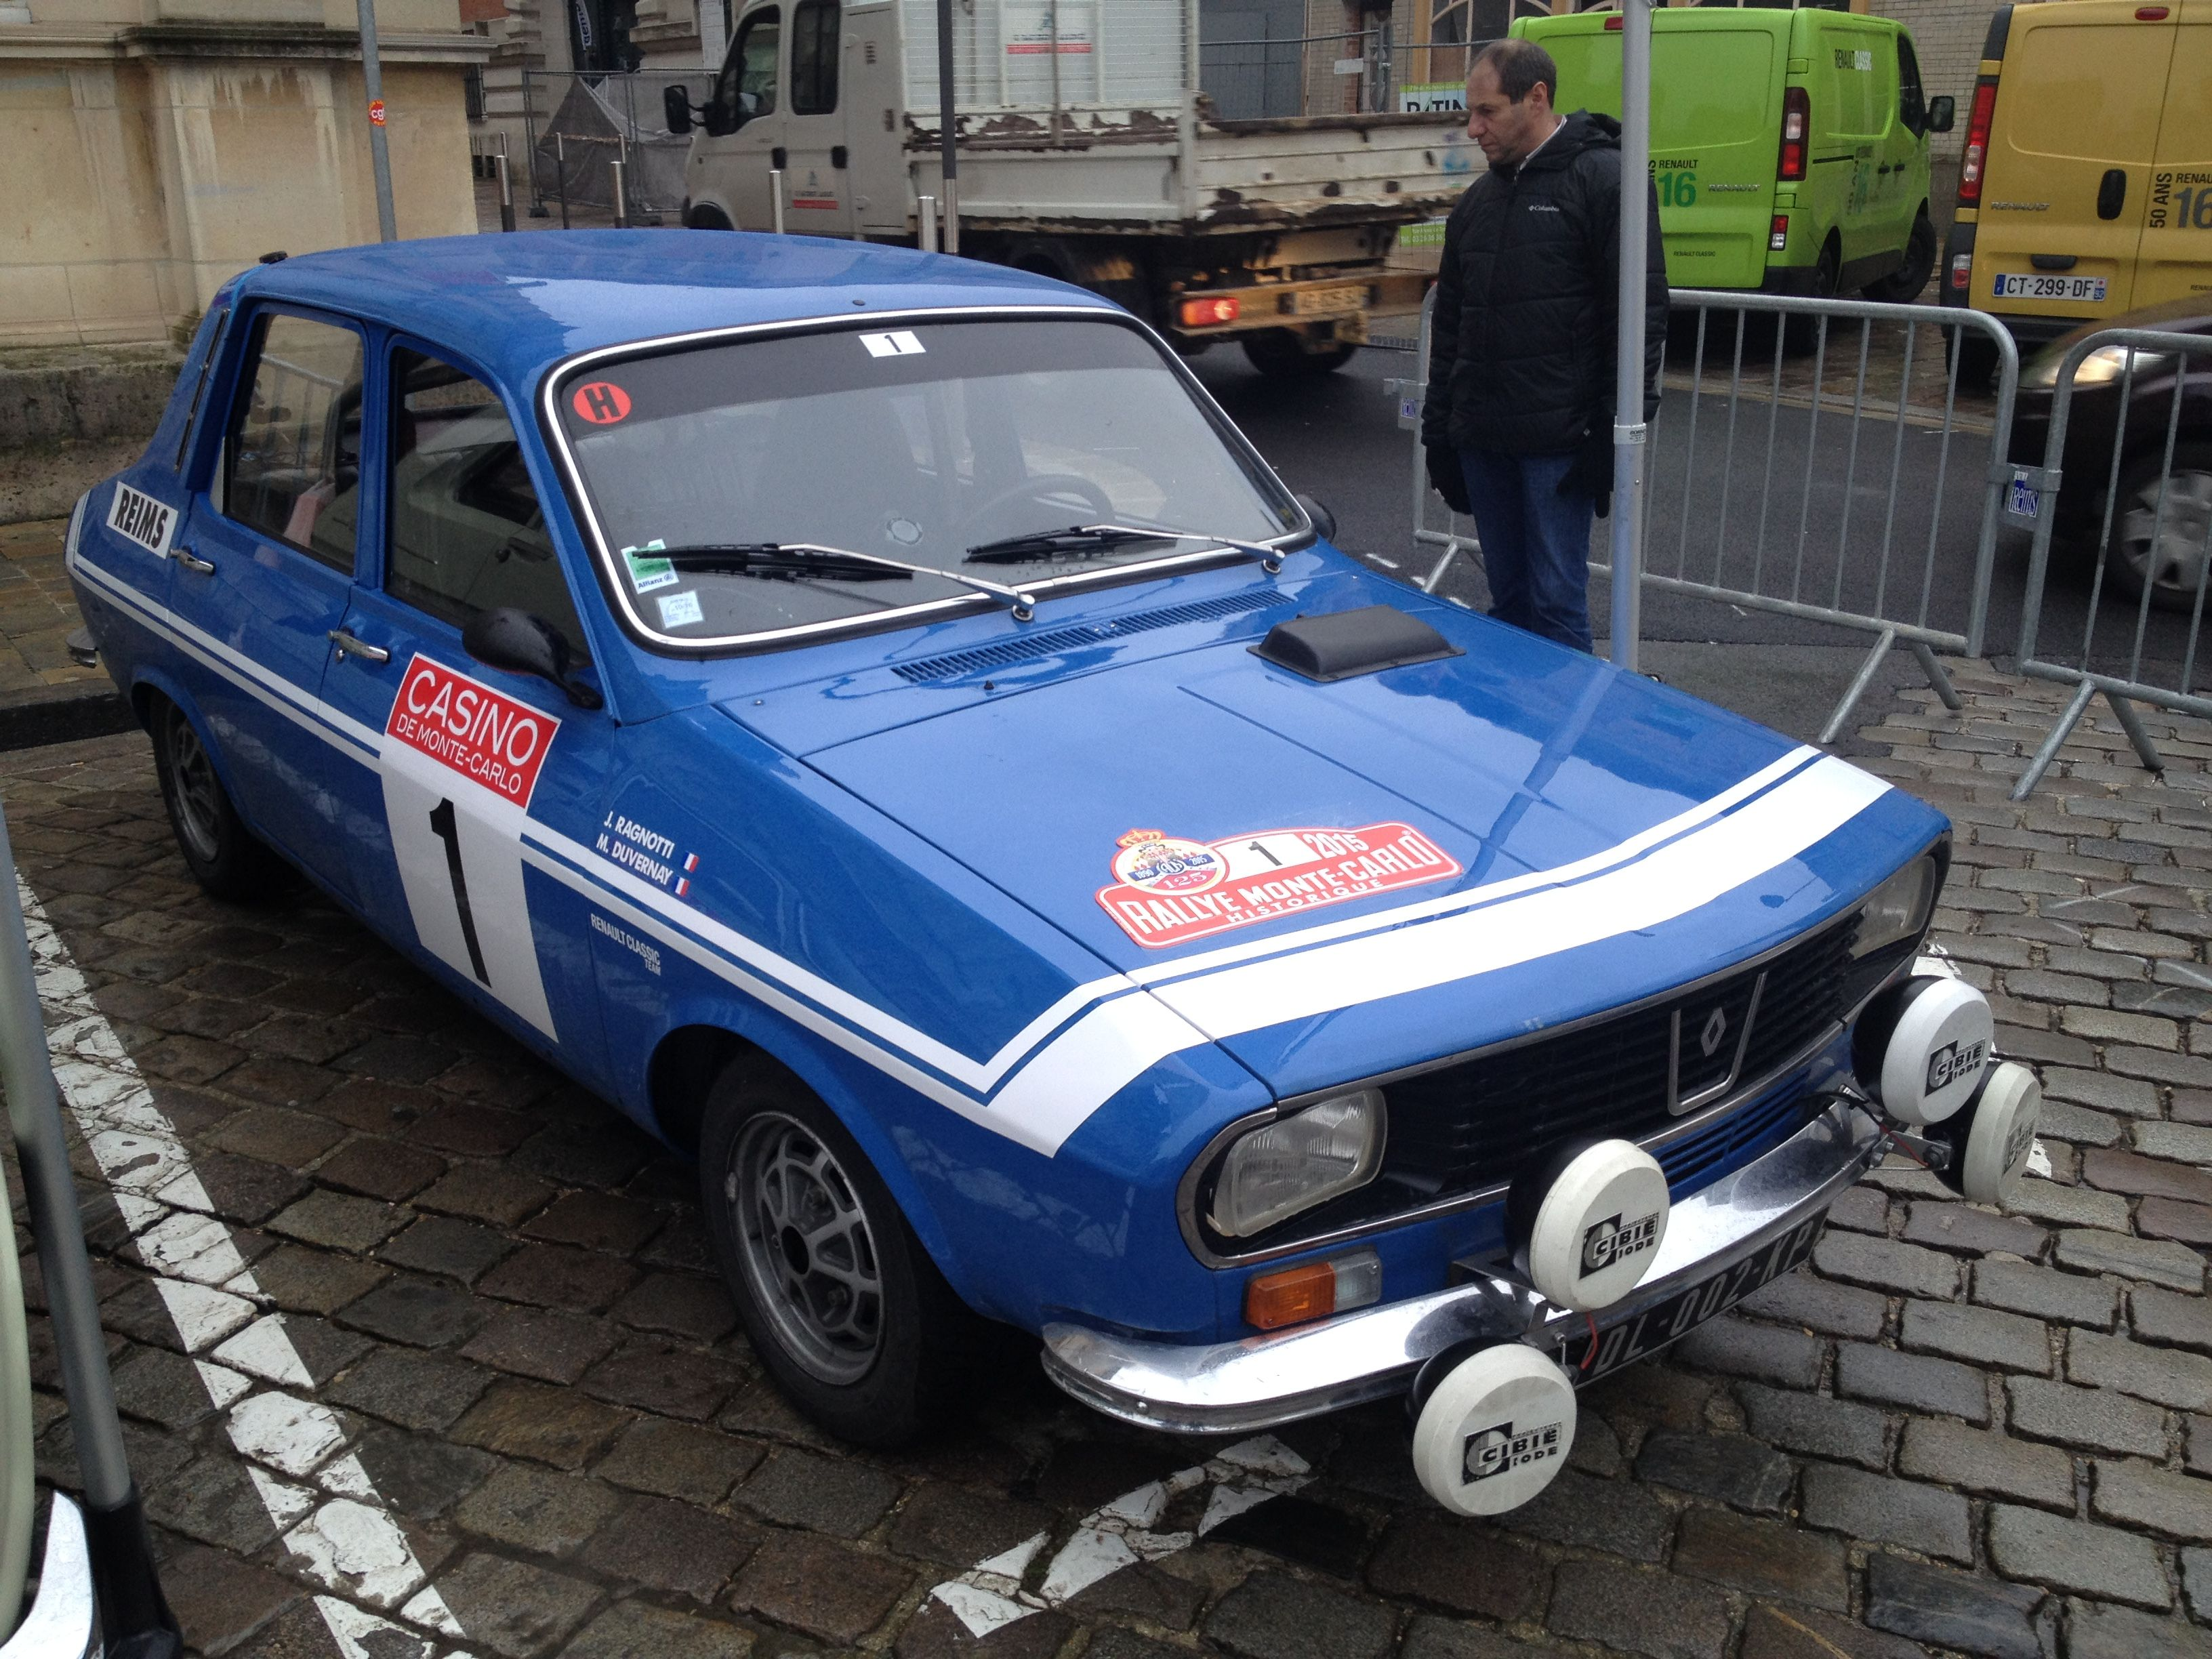 1971 renault 12 gordini ragnotti 2015 historical monte carlo rally. Black Bedroom Furniture Sets. Home Design Ideas